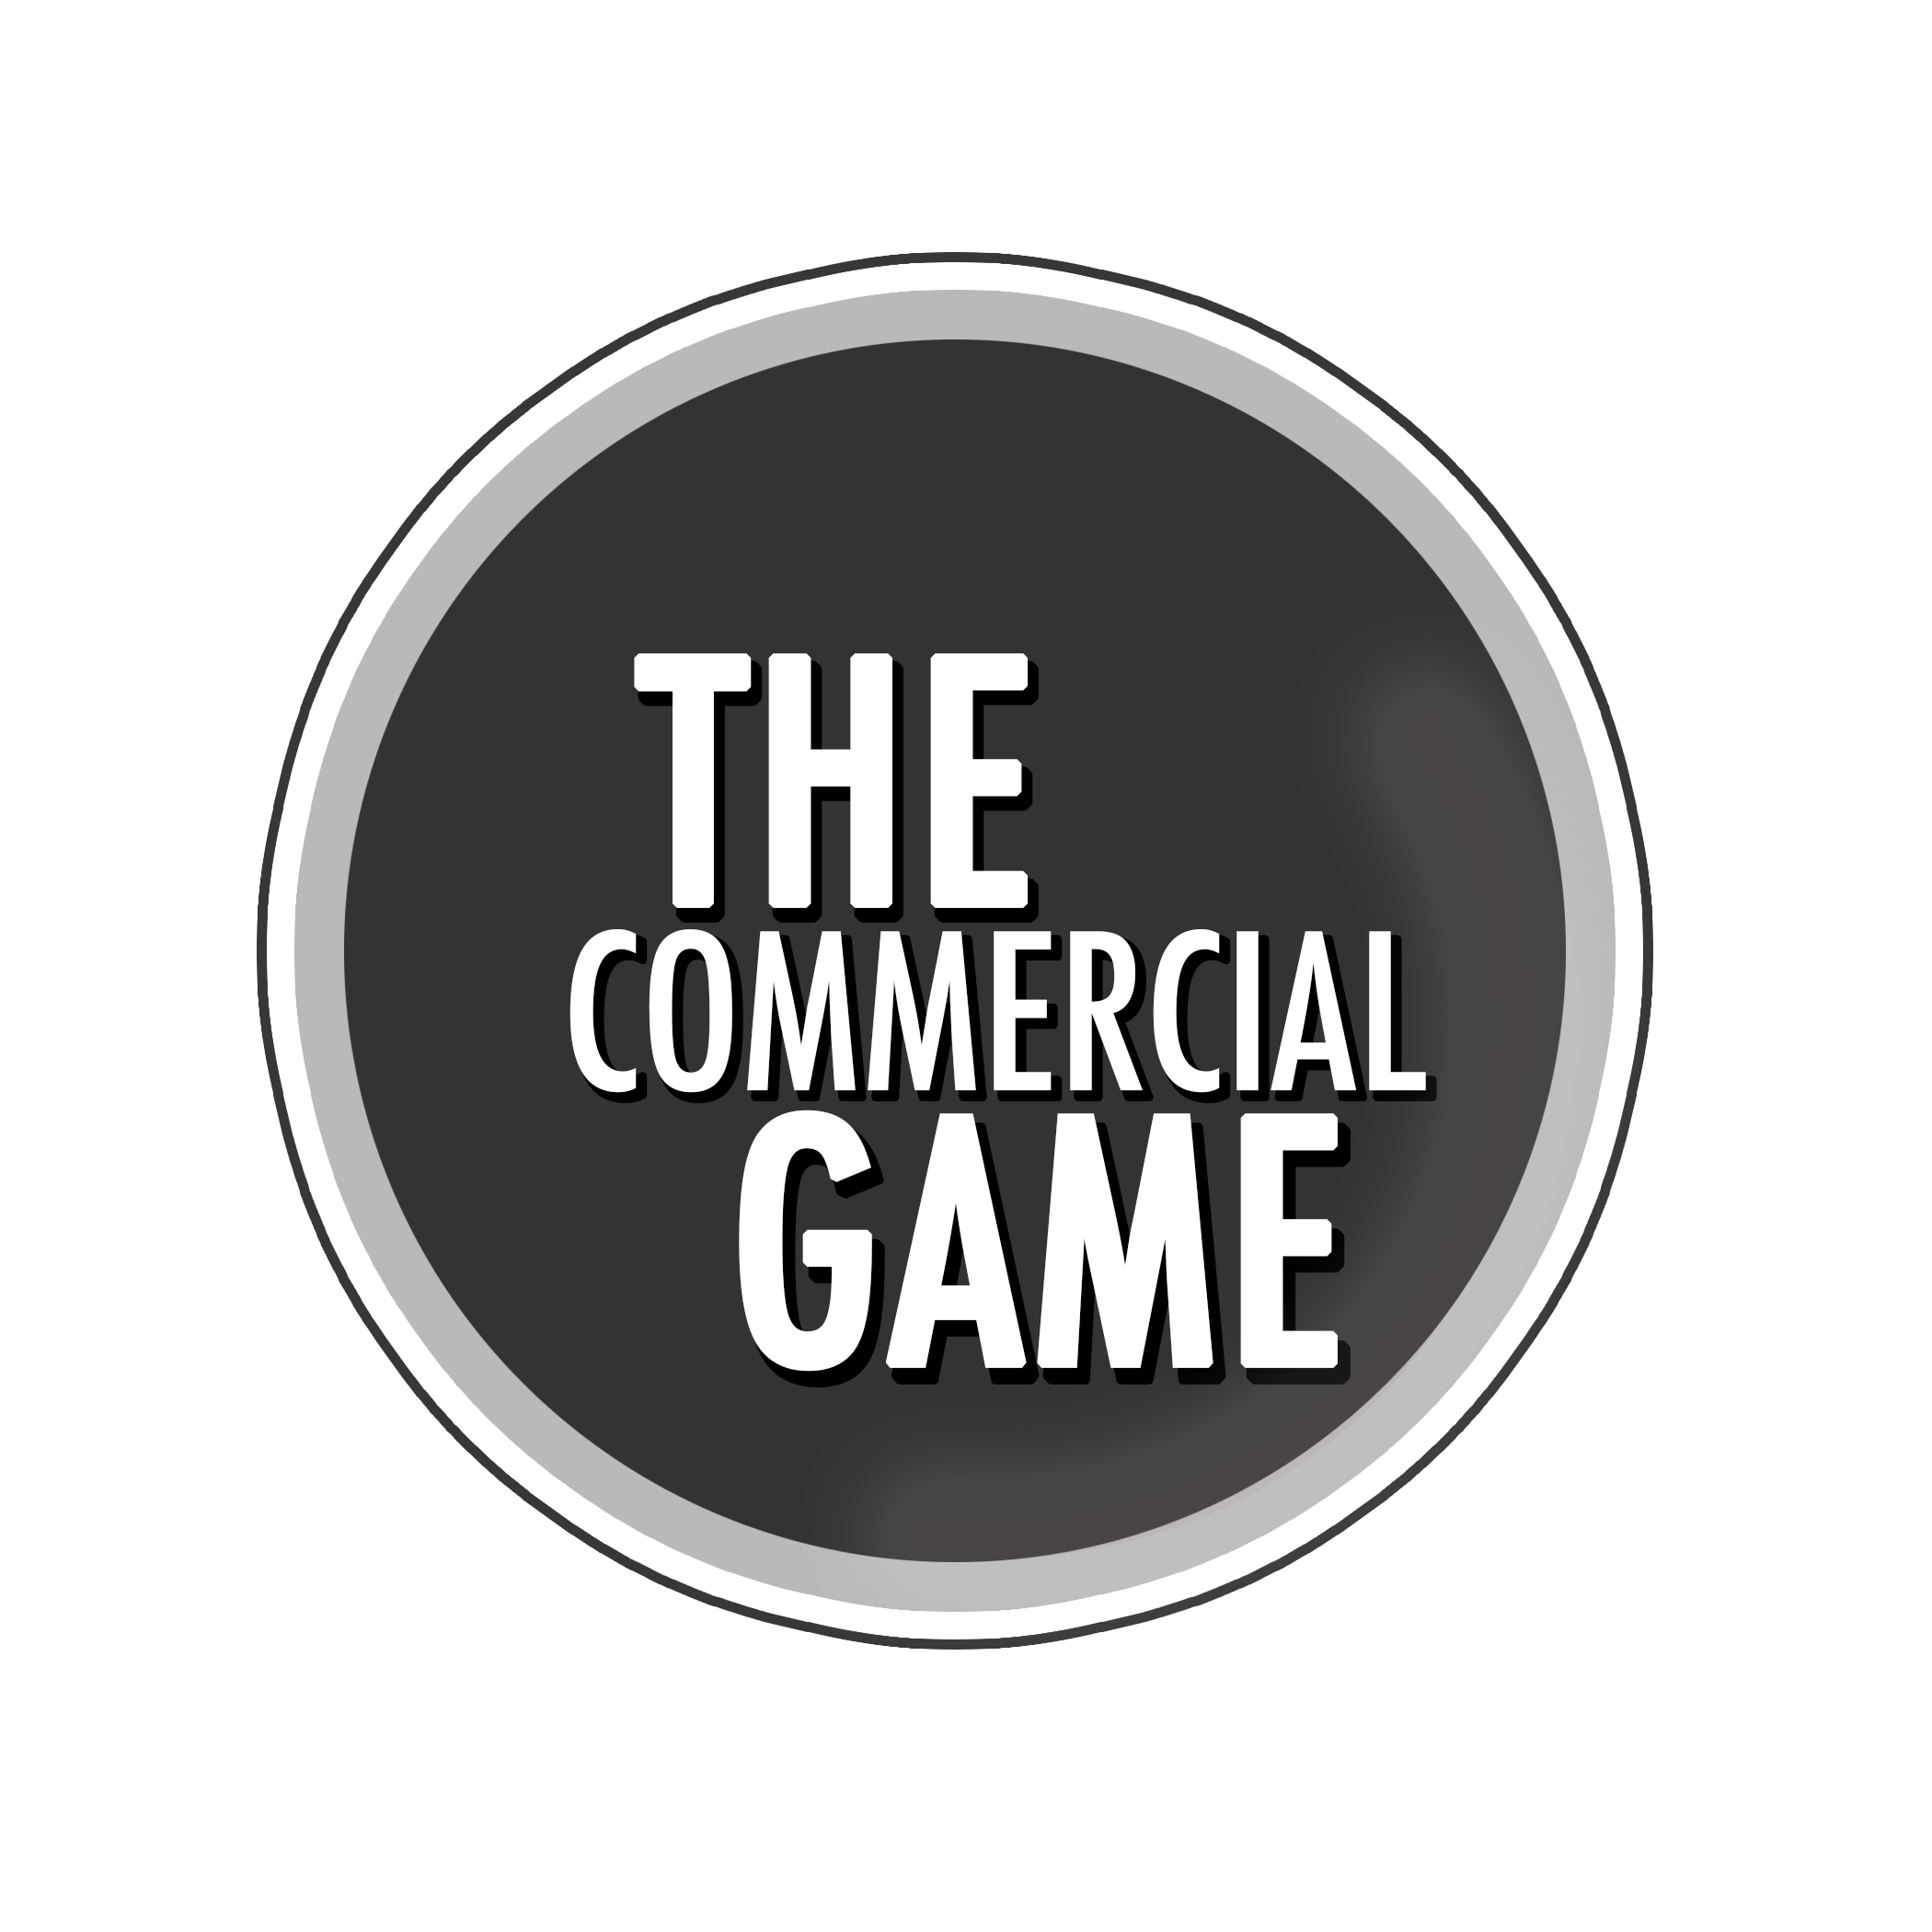 The Commercial Game